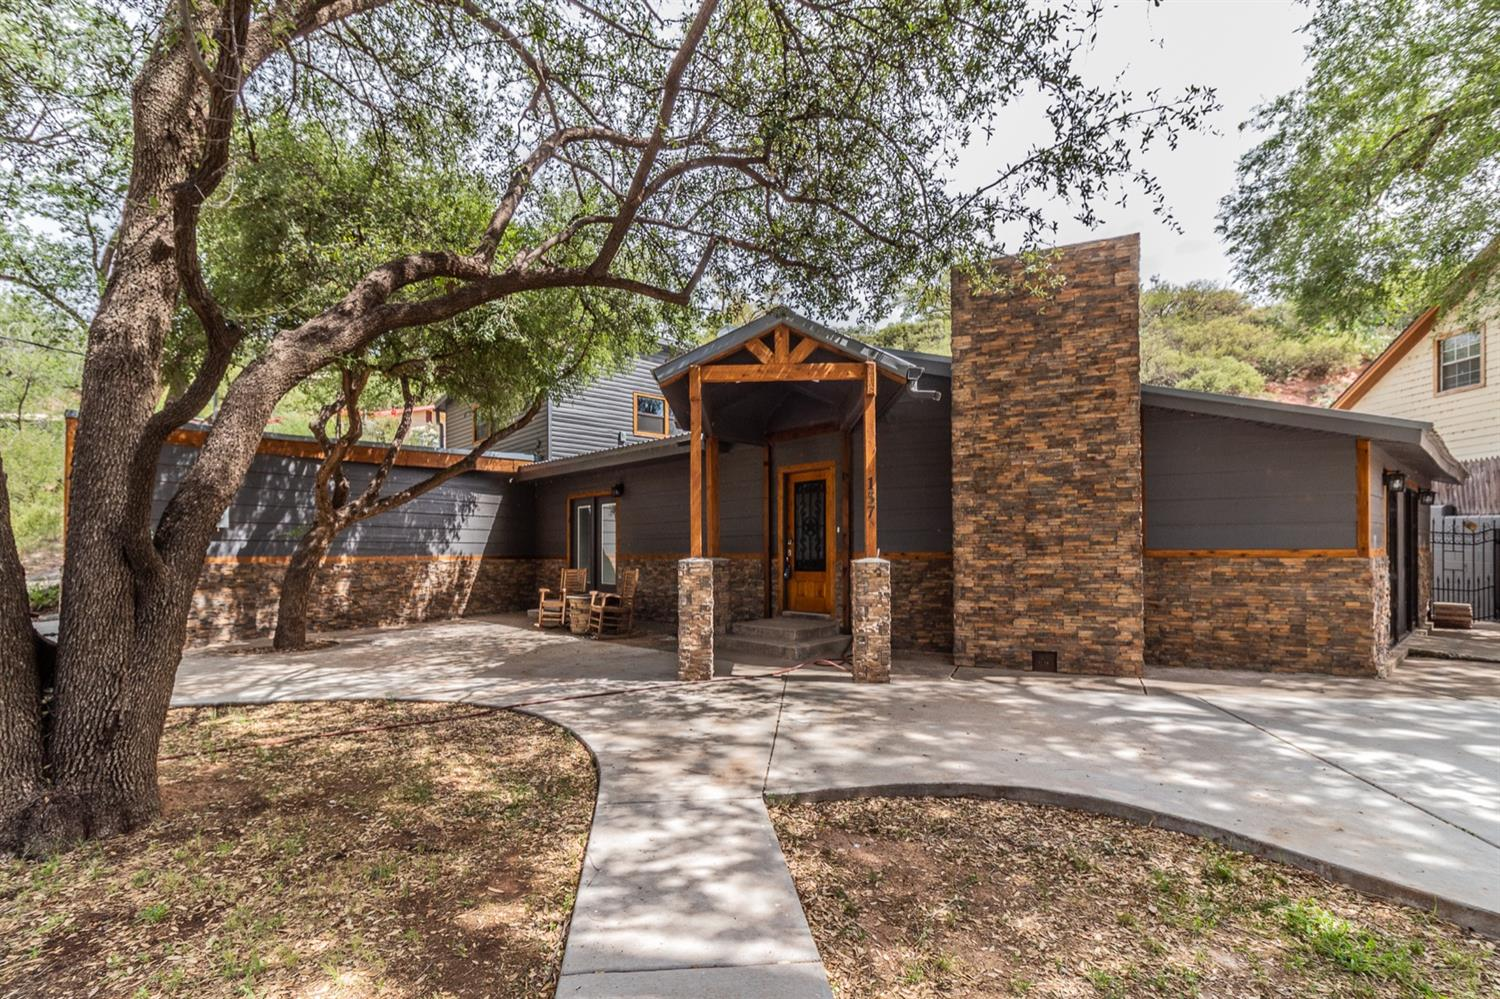 Welcome home to this incredibly remodeled home at Buffalo Springs lake! With 4 bedrooms, 4 bathrooms and 2 living areas plus an over sized two car garage this home has it all! Sitting on one of the bigger lots in the lower canyon it has all of the space to entertain! Walk out back to the amazing pool and cabana for perfect relaxation or walk out your french doors of your master bedroom to sit and enjoy your morning coffee. This home is the perfect combination of entertaining and serenity.